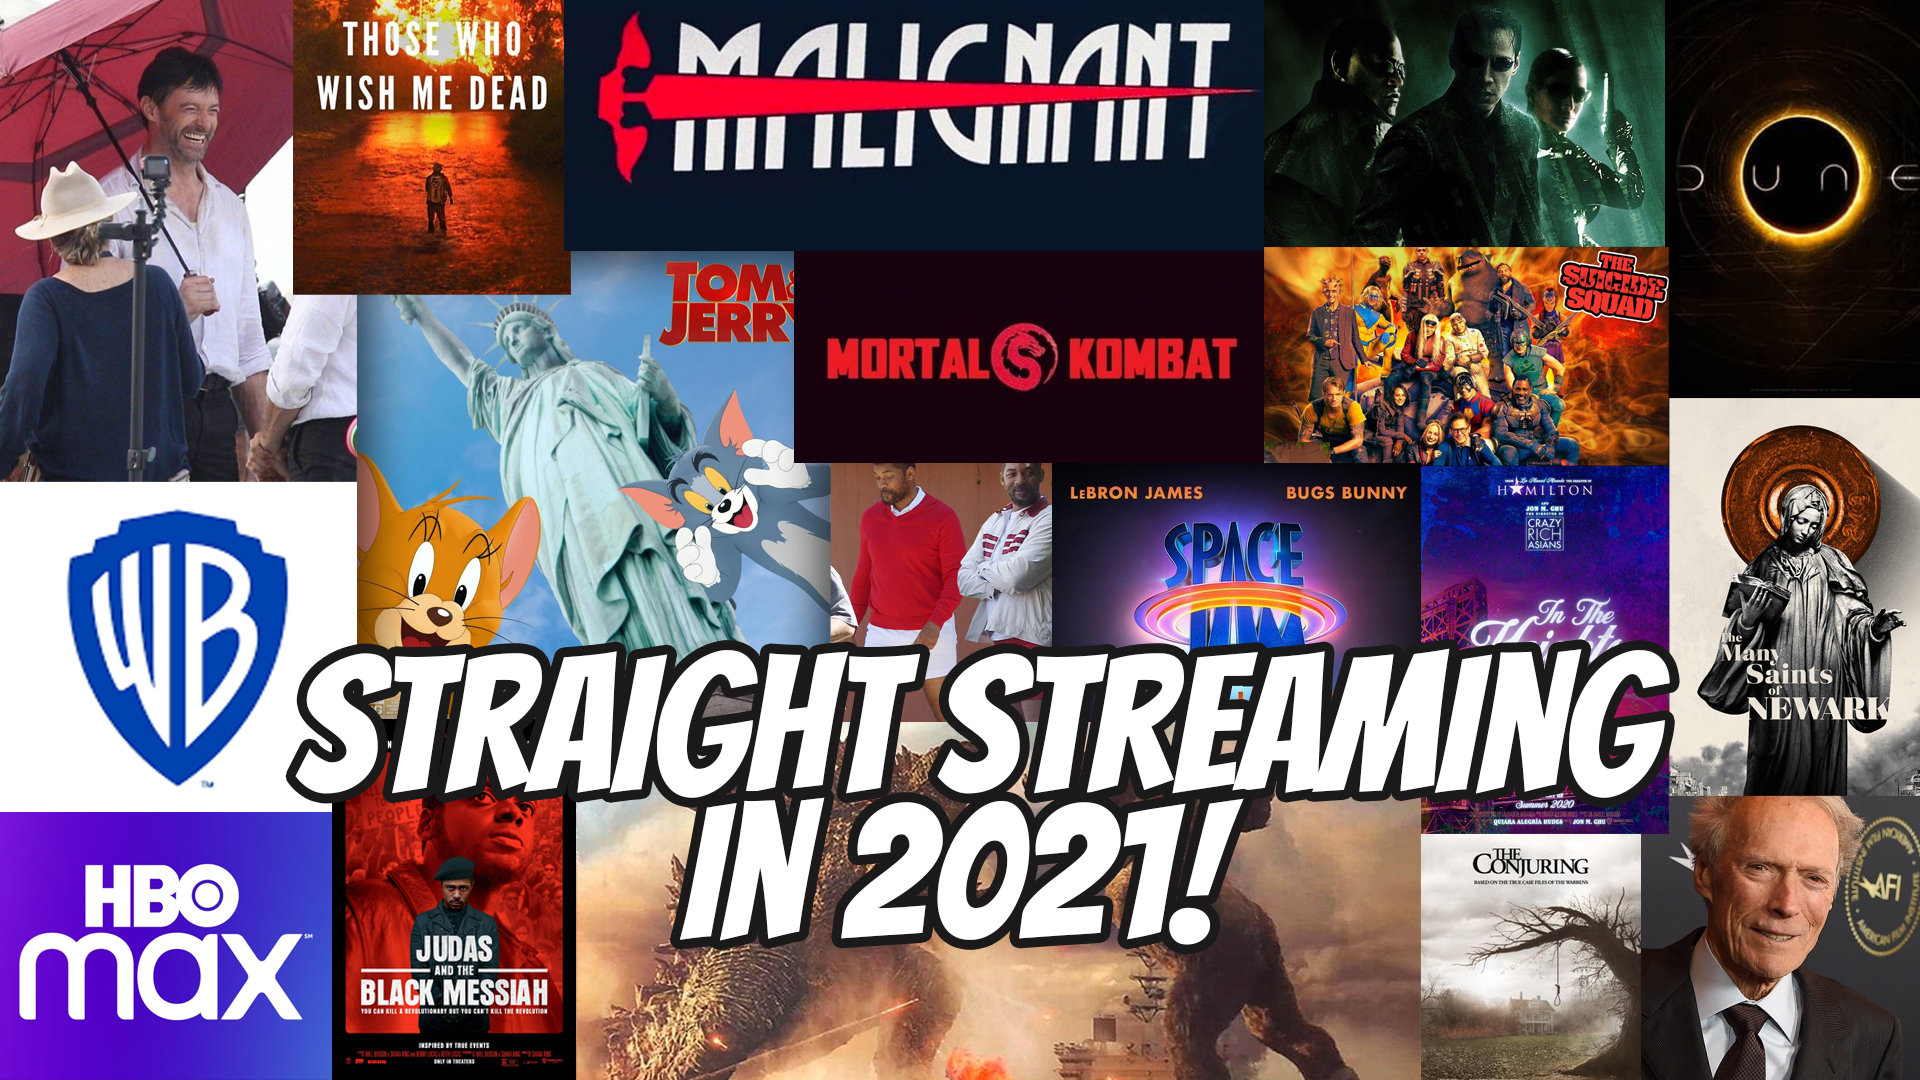 Straight Streaming in 2021!